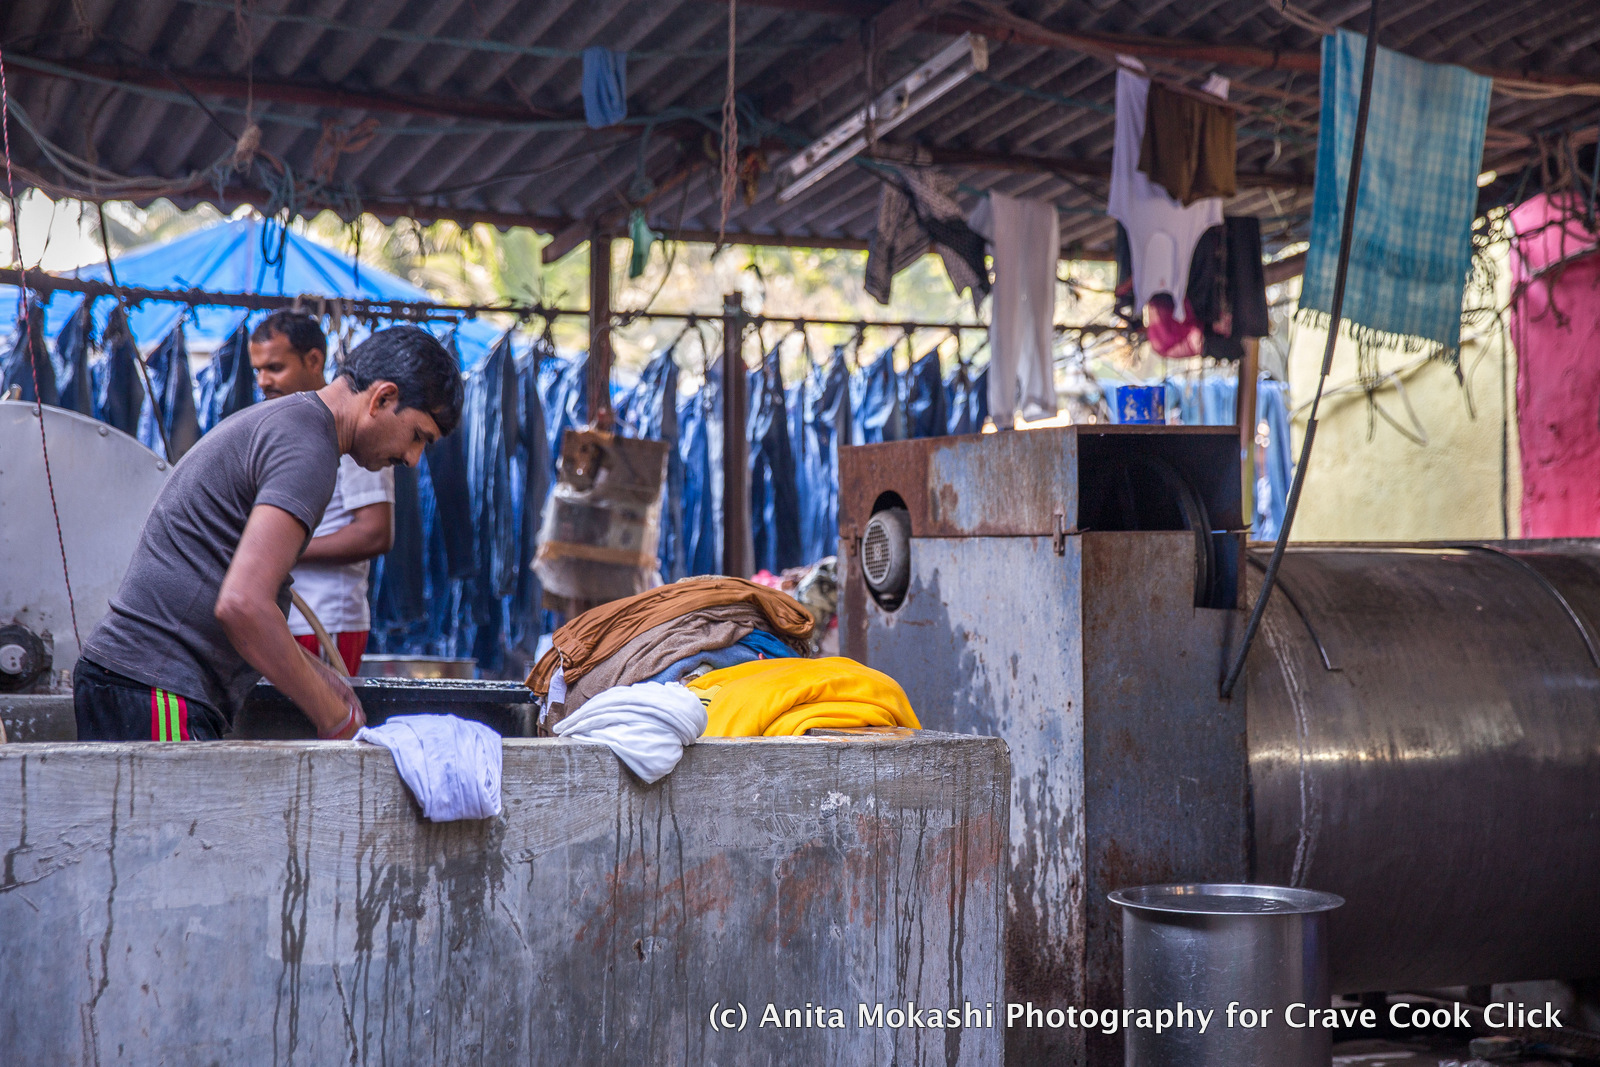 dhobi ghat of mumbai, must see places in mumbai, top ten things to do in mumbai, mumbai, india, maharashtra, streets of mumbai, markets of mumbai, markets of mumbai, best places in mumbai, must watch in mumbai, incredible india, india tourism, maharashtra tourism